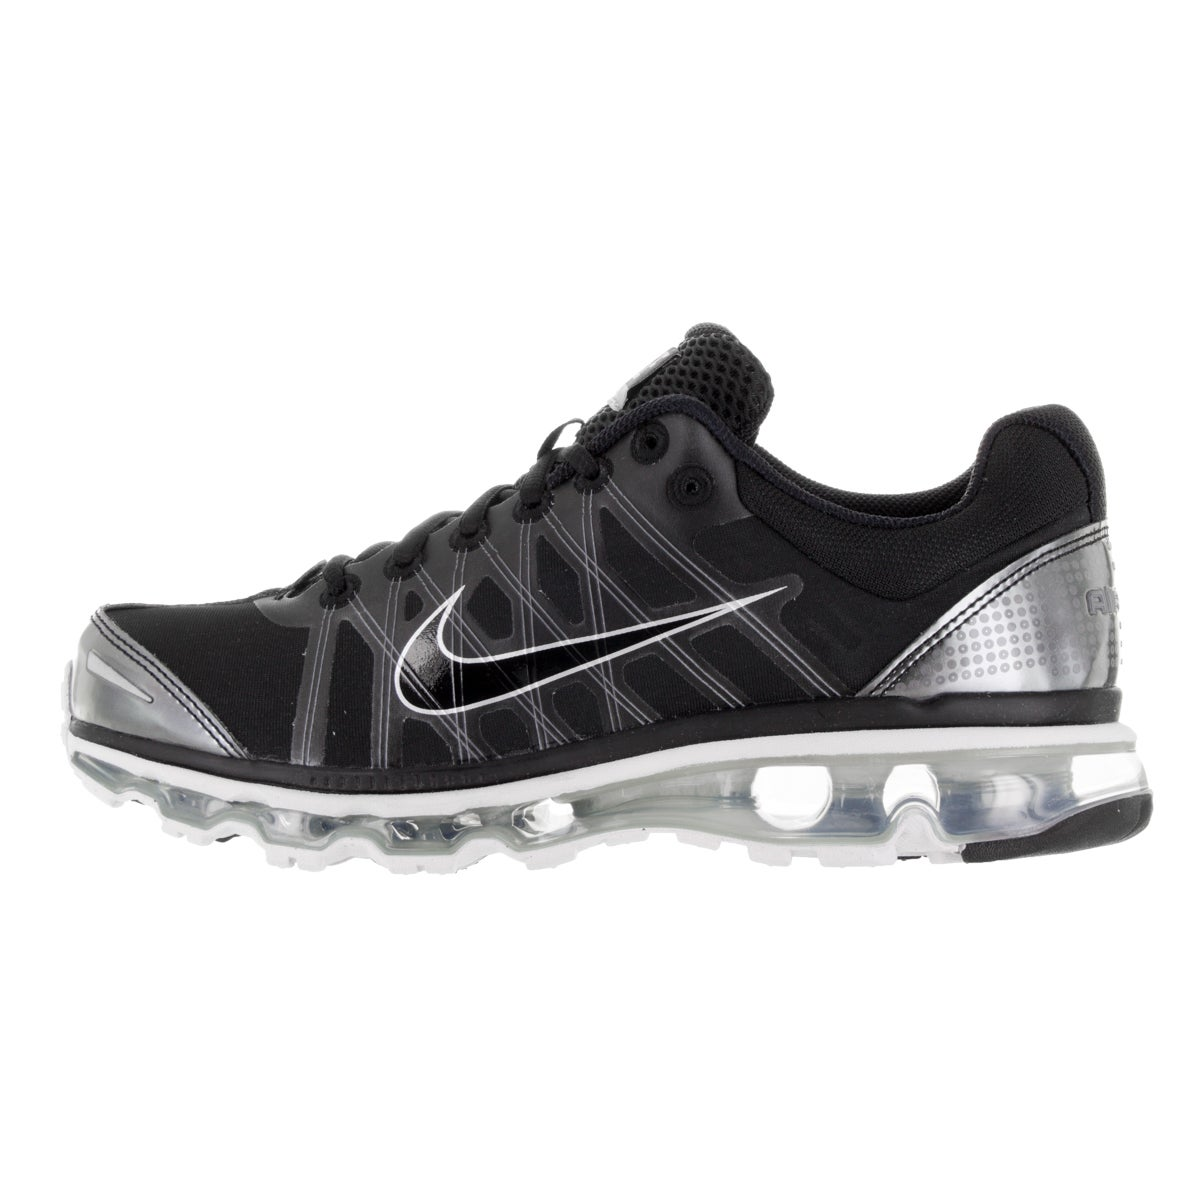 86b9d8accab92 Shop Nike Men s Air Max 2009 Black Synthetic Leather Running Shoes - Free  Shipping Today - Overstock - 13982325